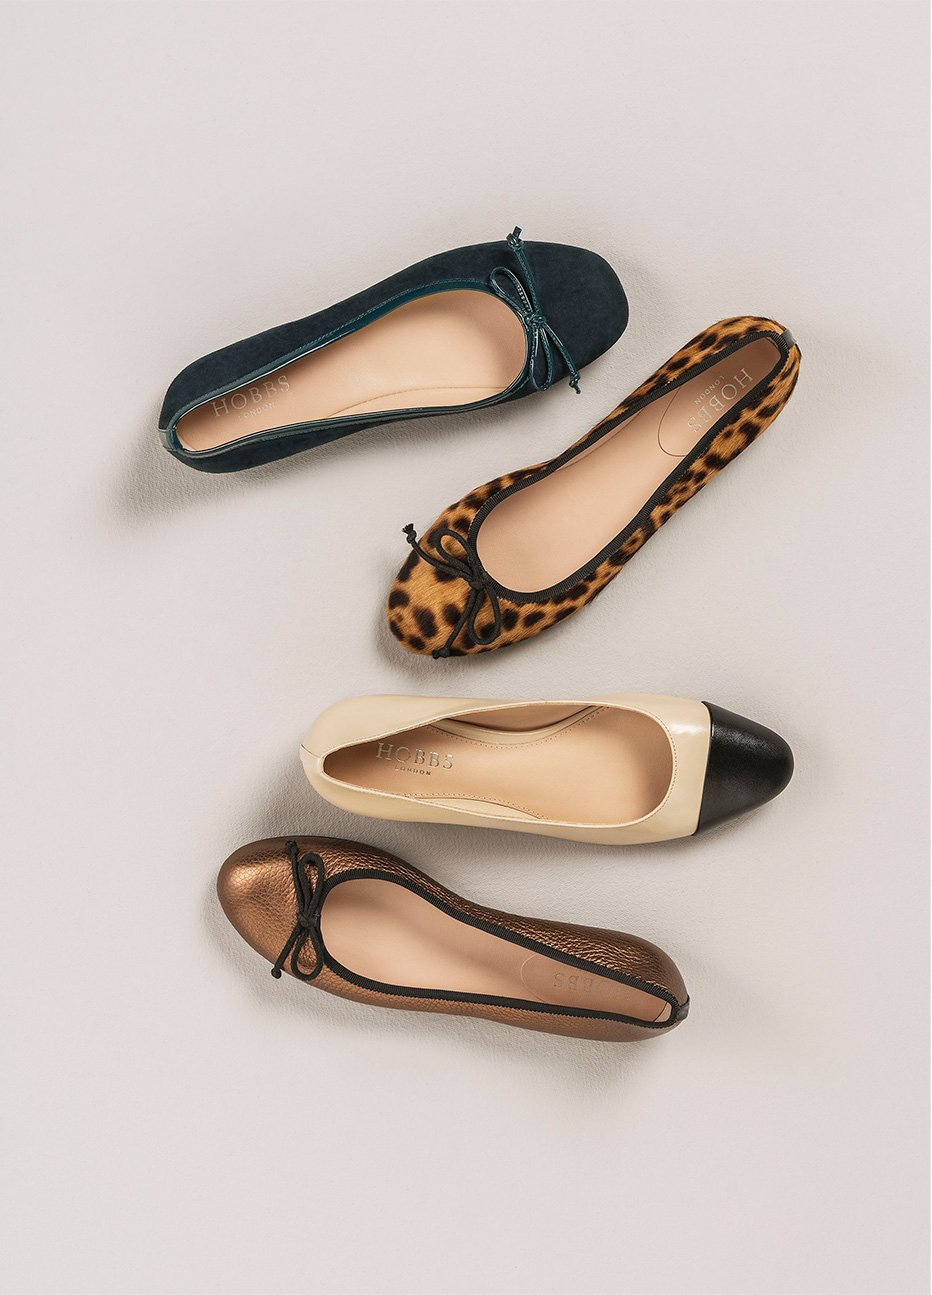 Selection of new autumn winter Hobbs premium leather ballet flats